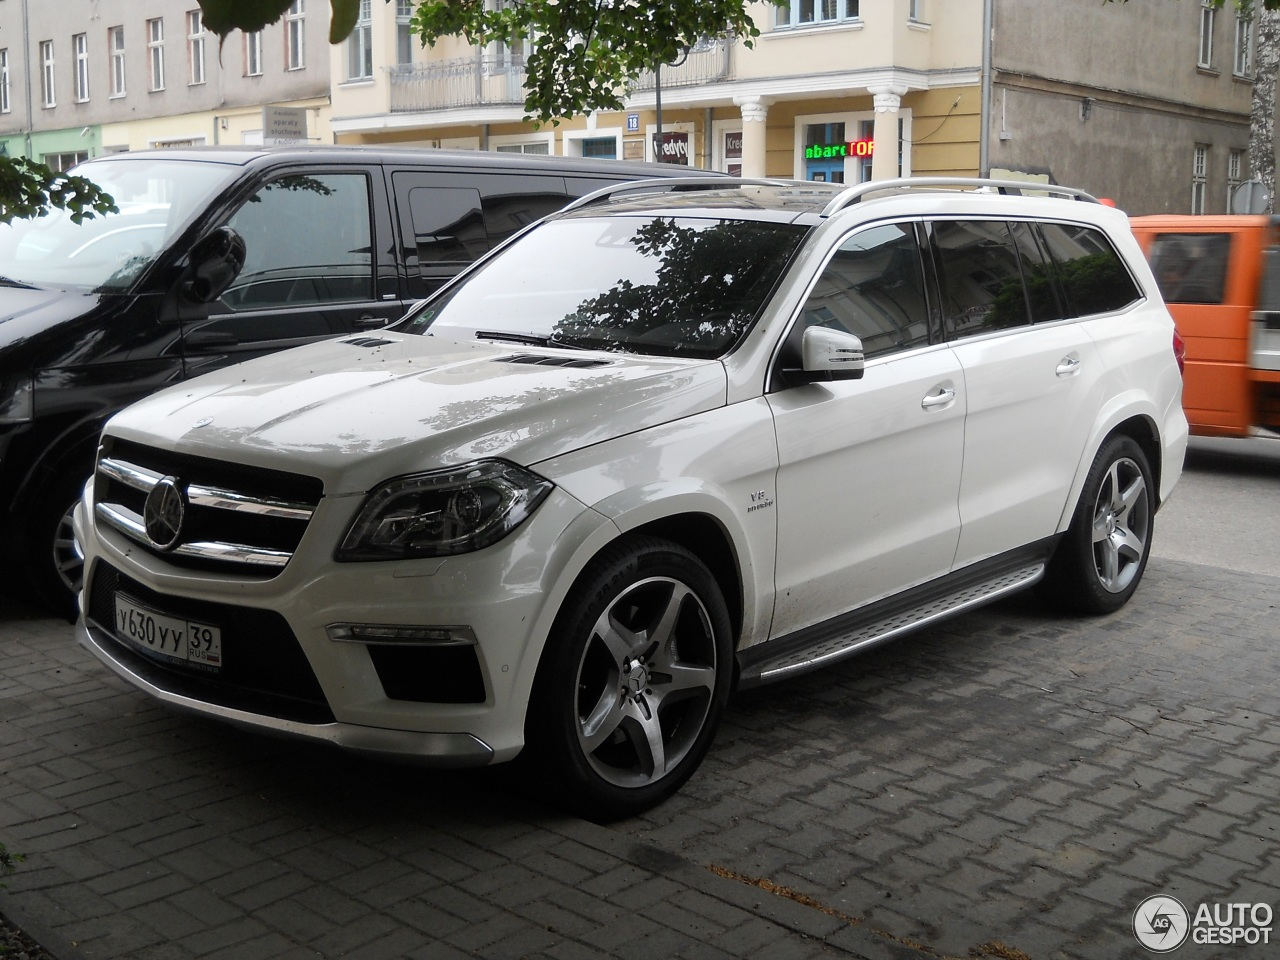 Mercedes benz gl 63 amg x166 31 may 2013 autogespot for Mercedes benz gls 63 amg